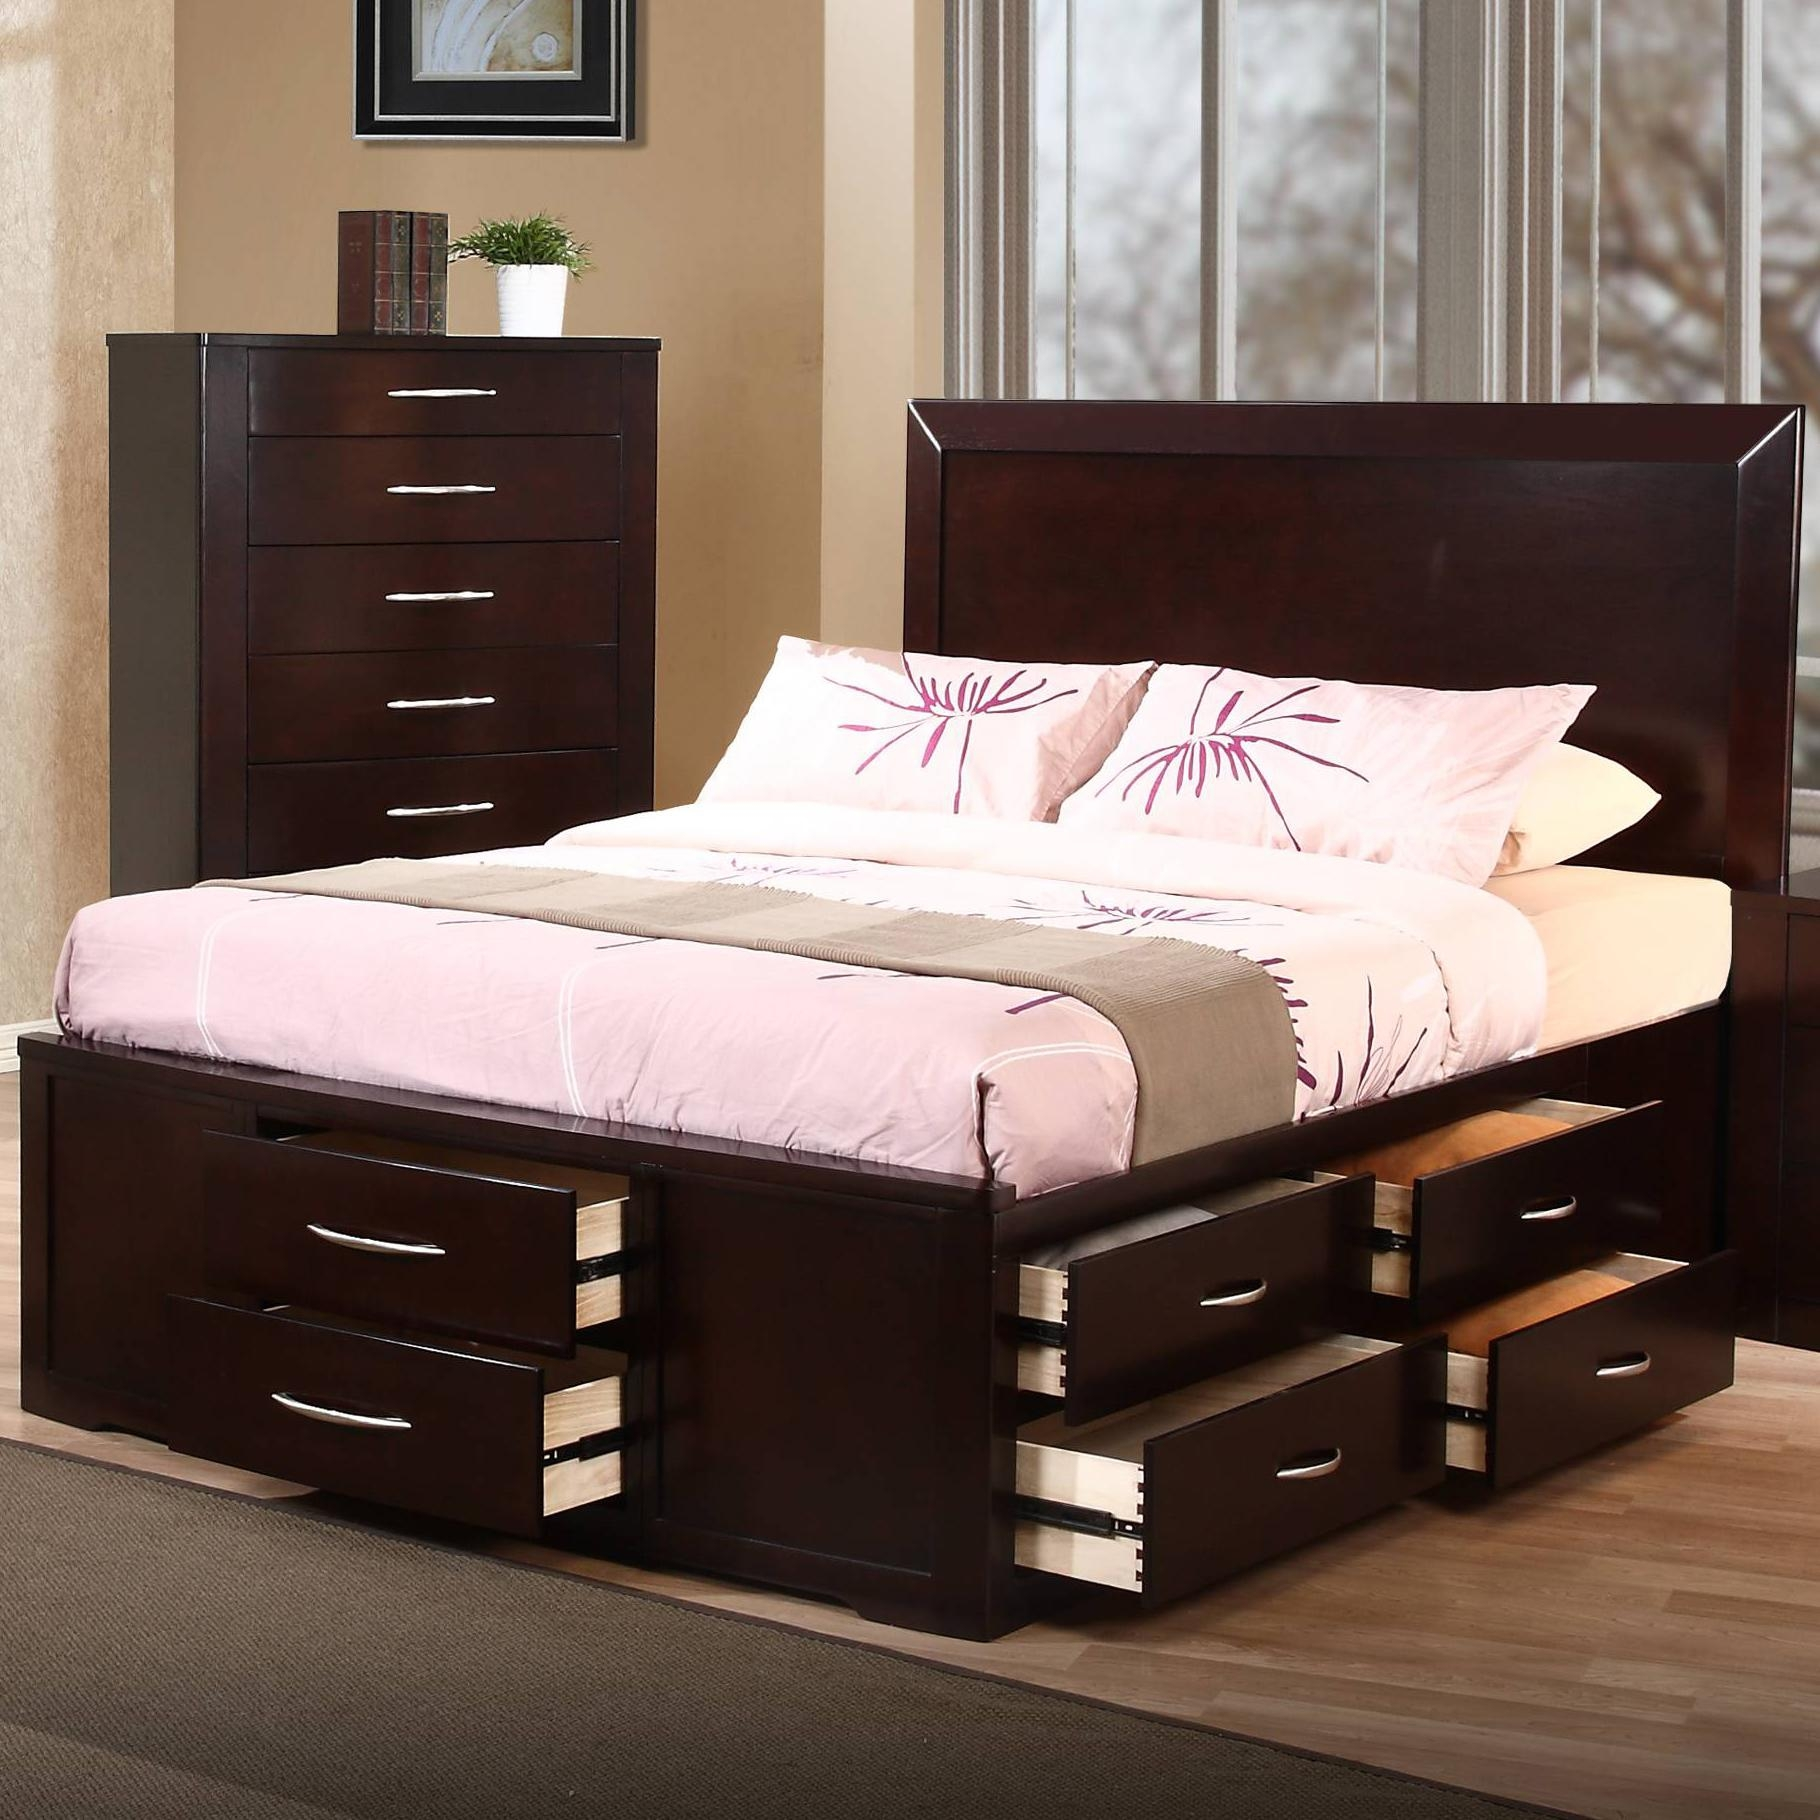 Full Size Bed Frame With Storage Drawers